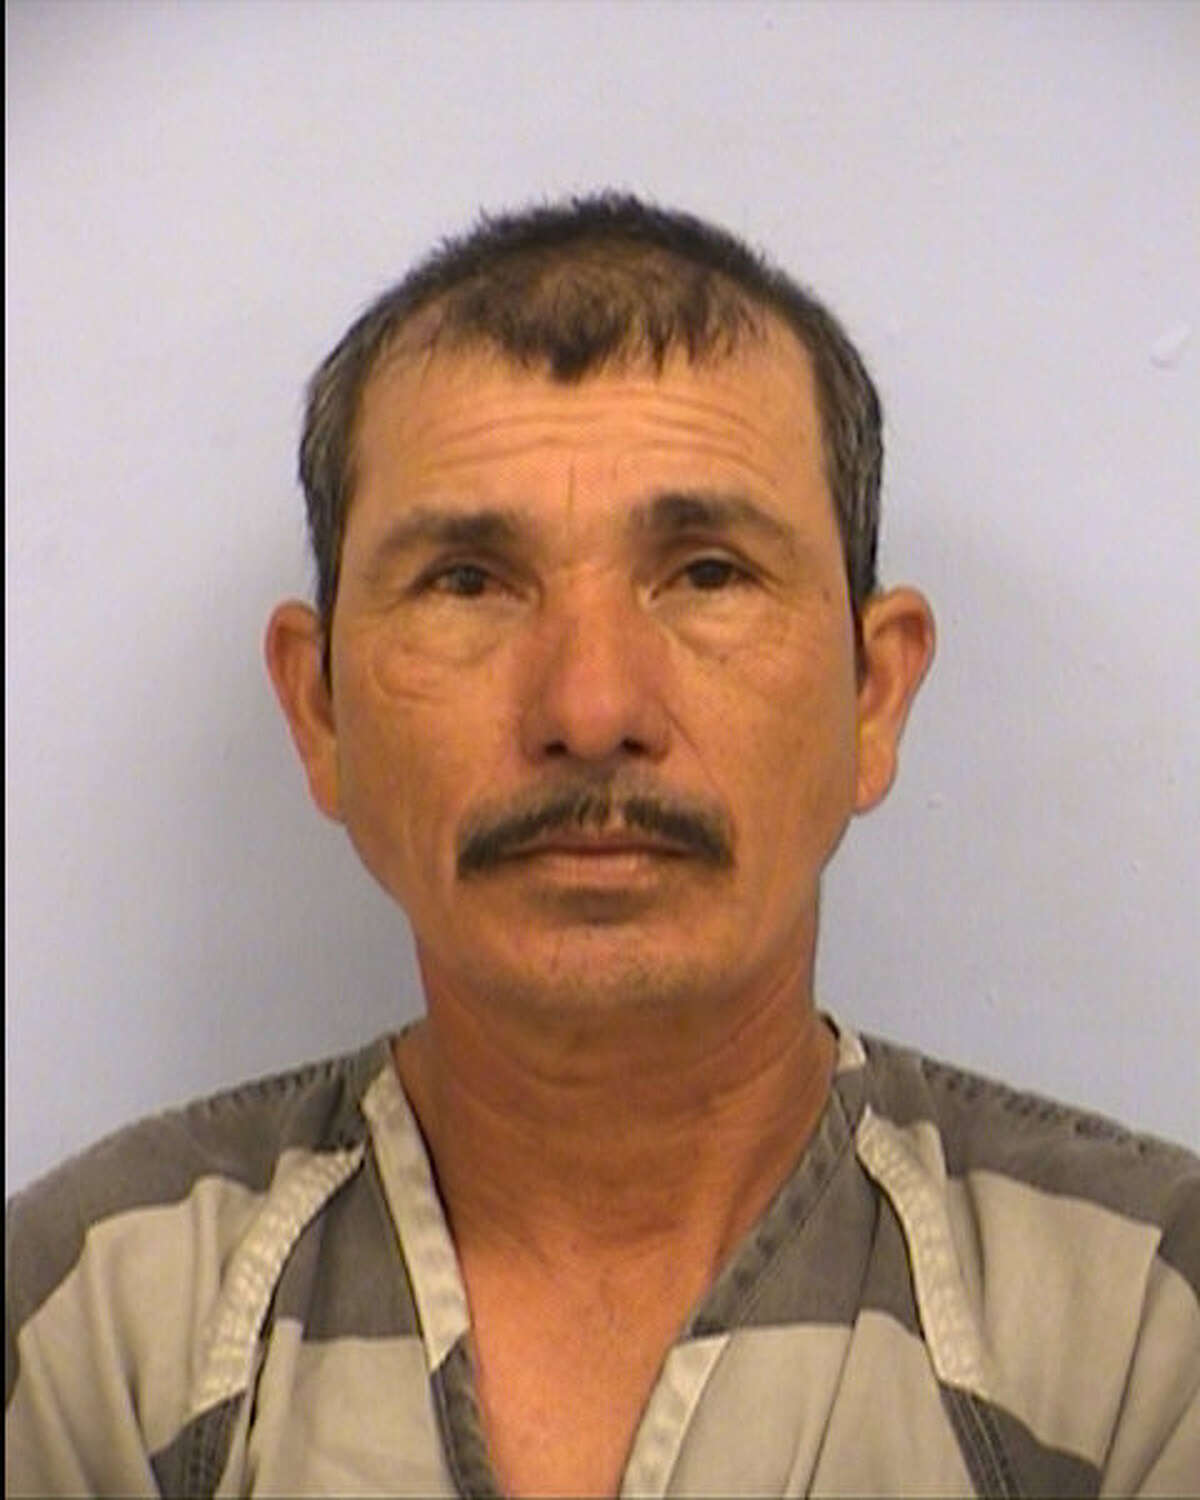 Fajardo Condrado has been charged with misdemeanor animal cruelty in connection with a Travis County cockfighting ring on Saturday, arrest affidavits show.